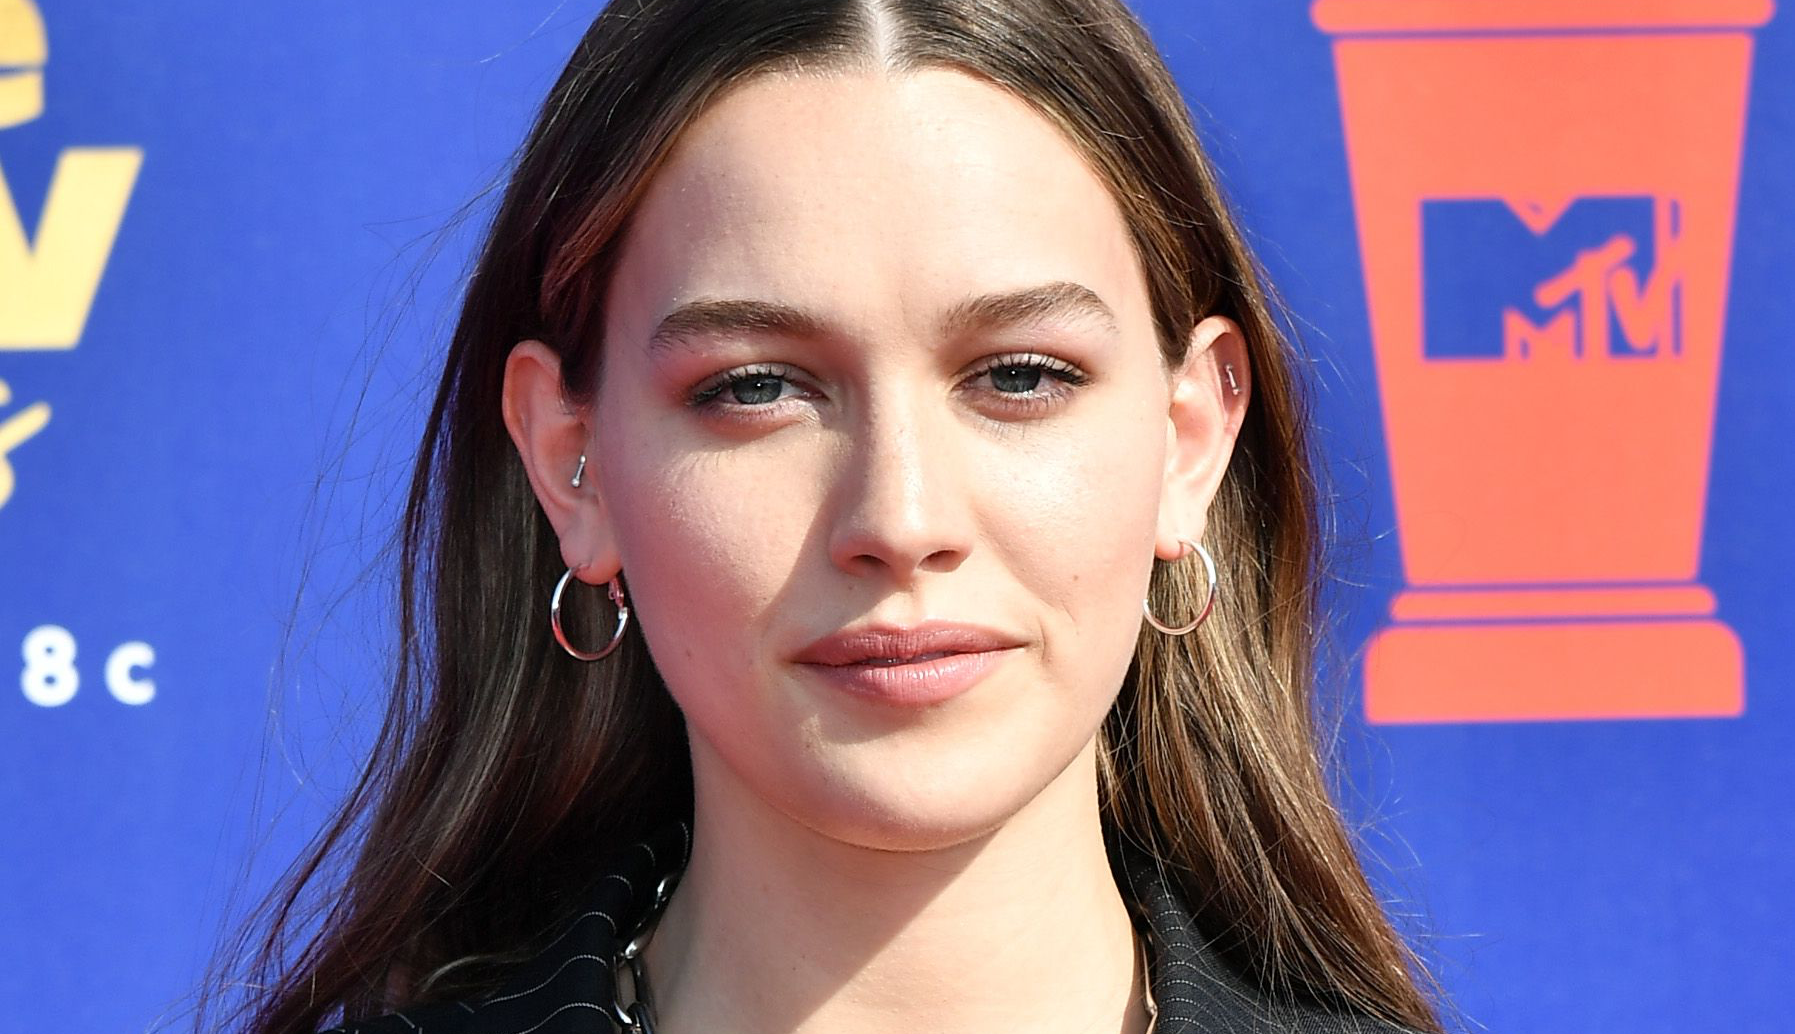 Victoria Pedretti To Headline The Haunting Of Bly Manor Netflix Series Deadline